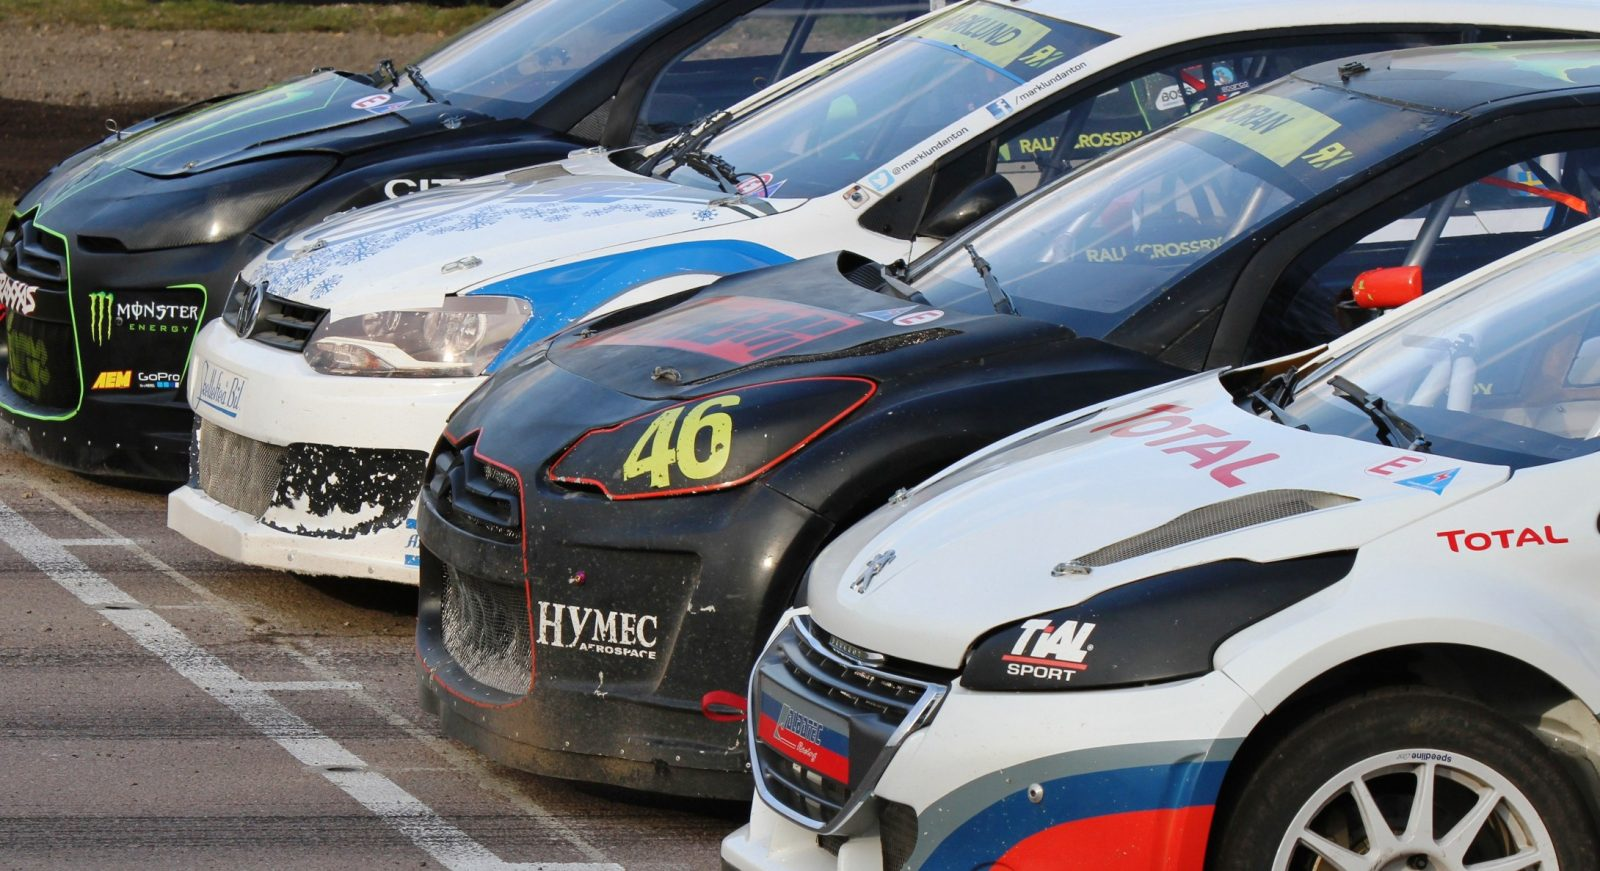 All-New FIA RallyCross Series Looks FUN! Dart, Sonic, Beetle, Fiesta, Fabia, Pug 208GTI and More On-Board 8